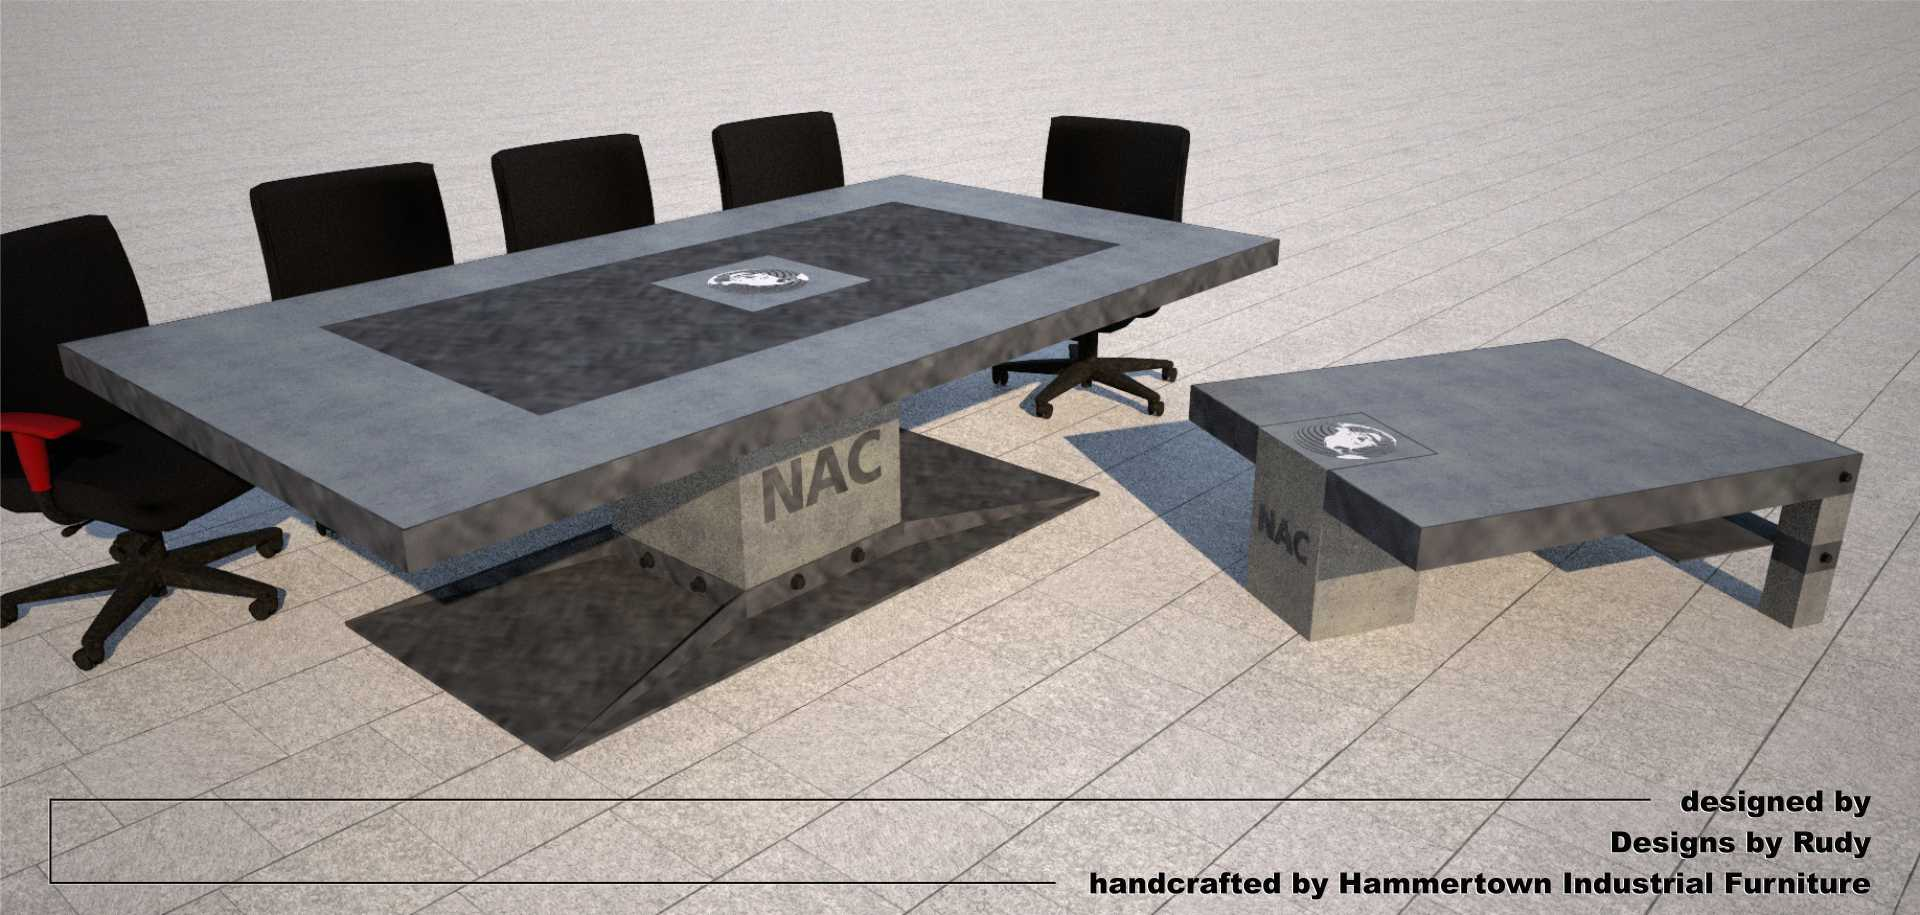 Concrete boardroom table with steel frame and base, concrete and steel coffee table designed by Designs by Rudy